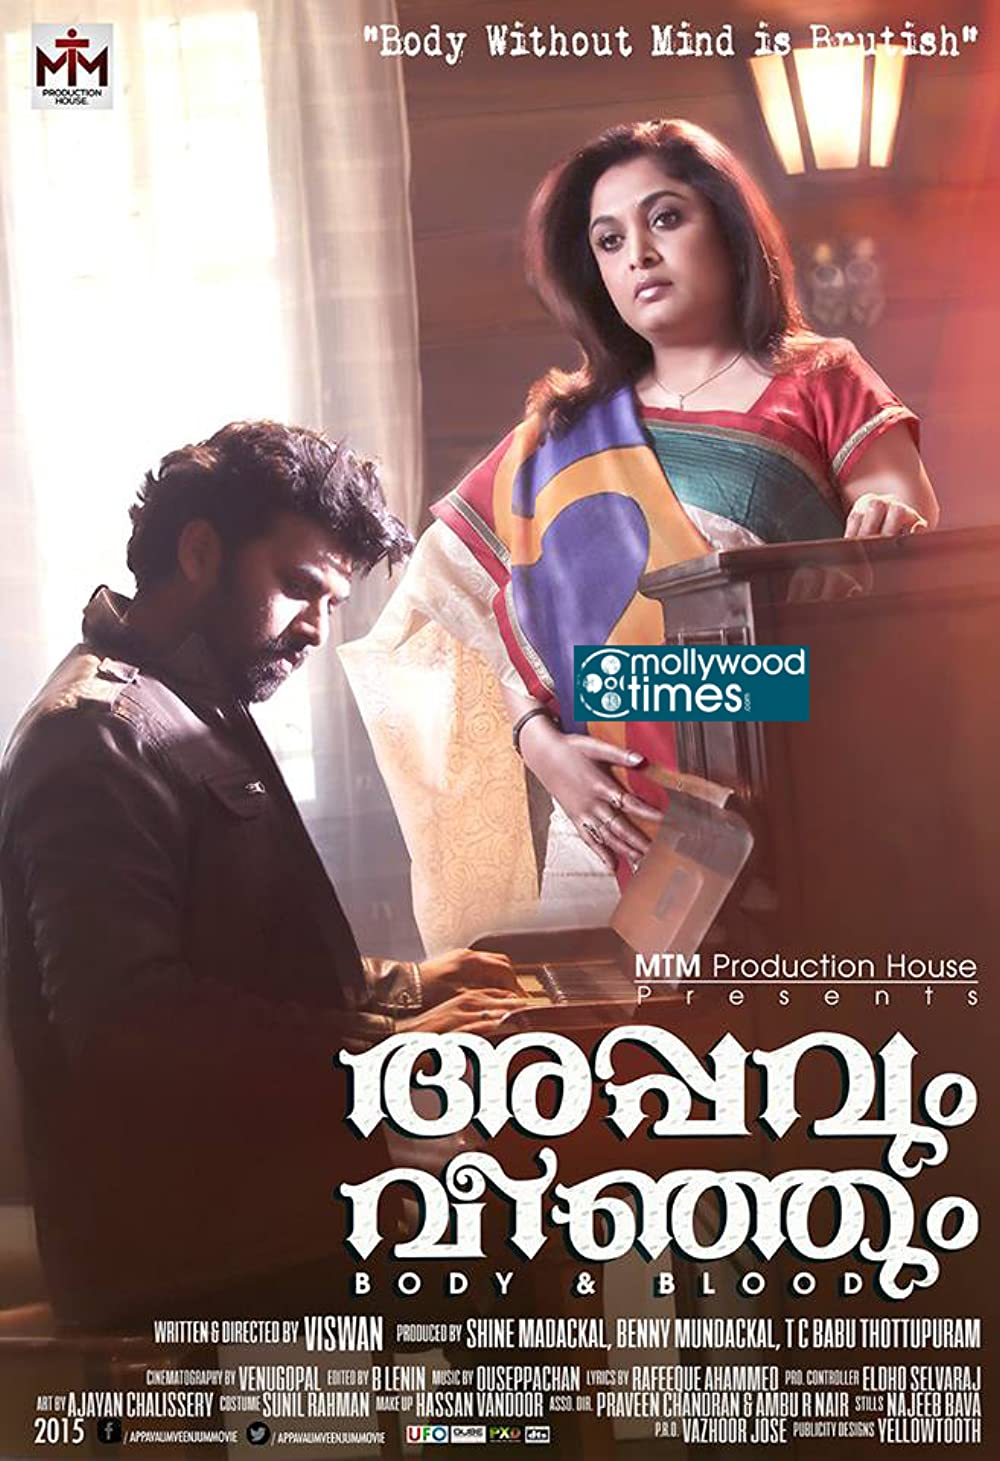 Jism Aur Khoon (Appavum Veenjum) 2021 Hindi Dubbed 1080p HDRip 1.31GB Download